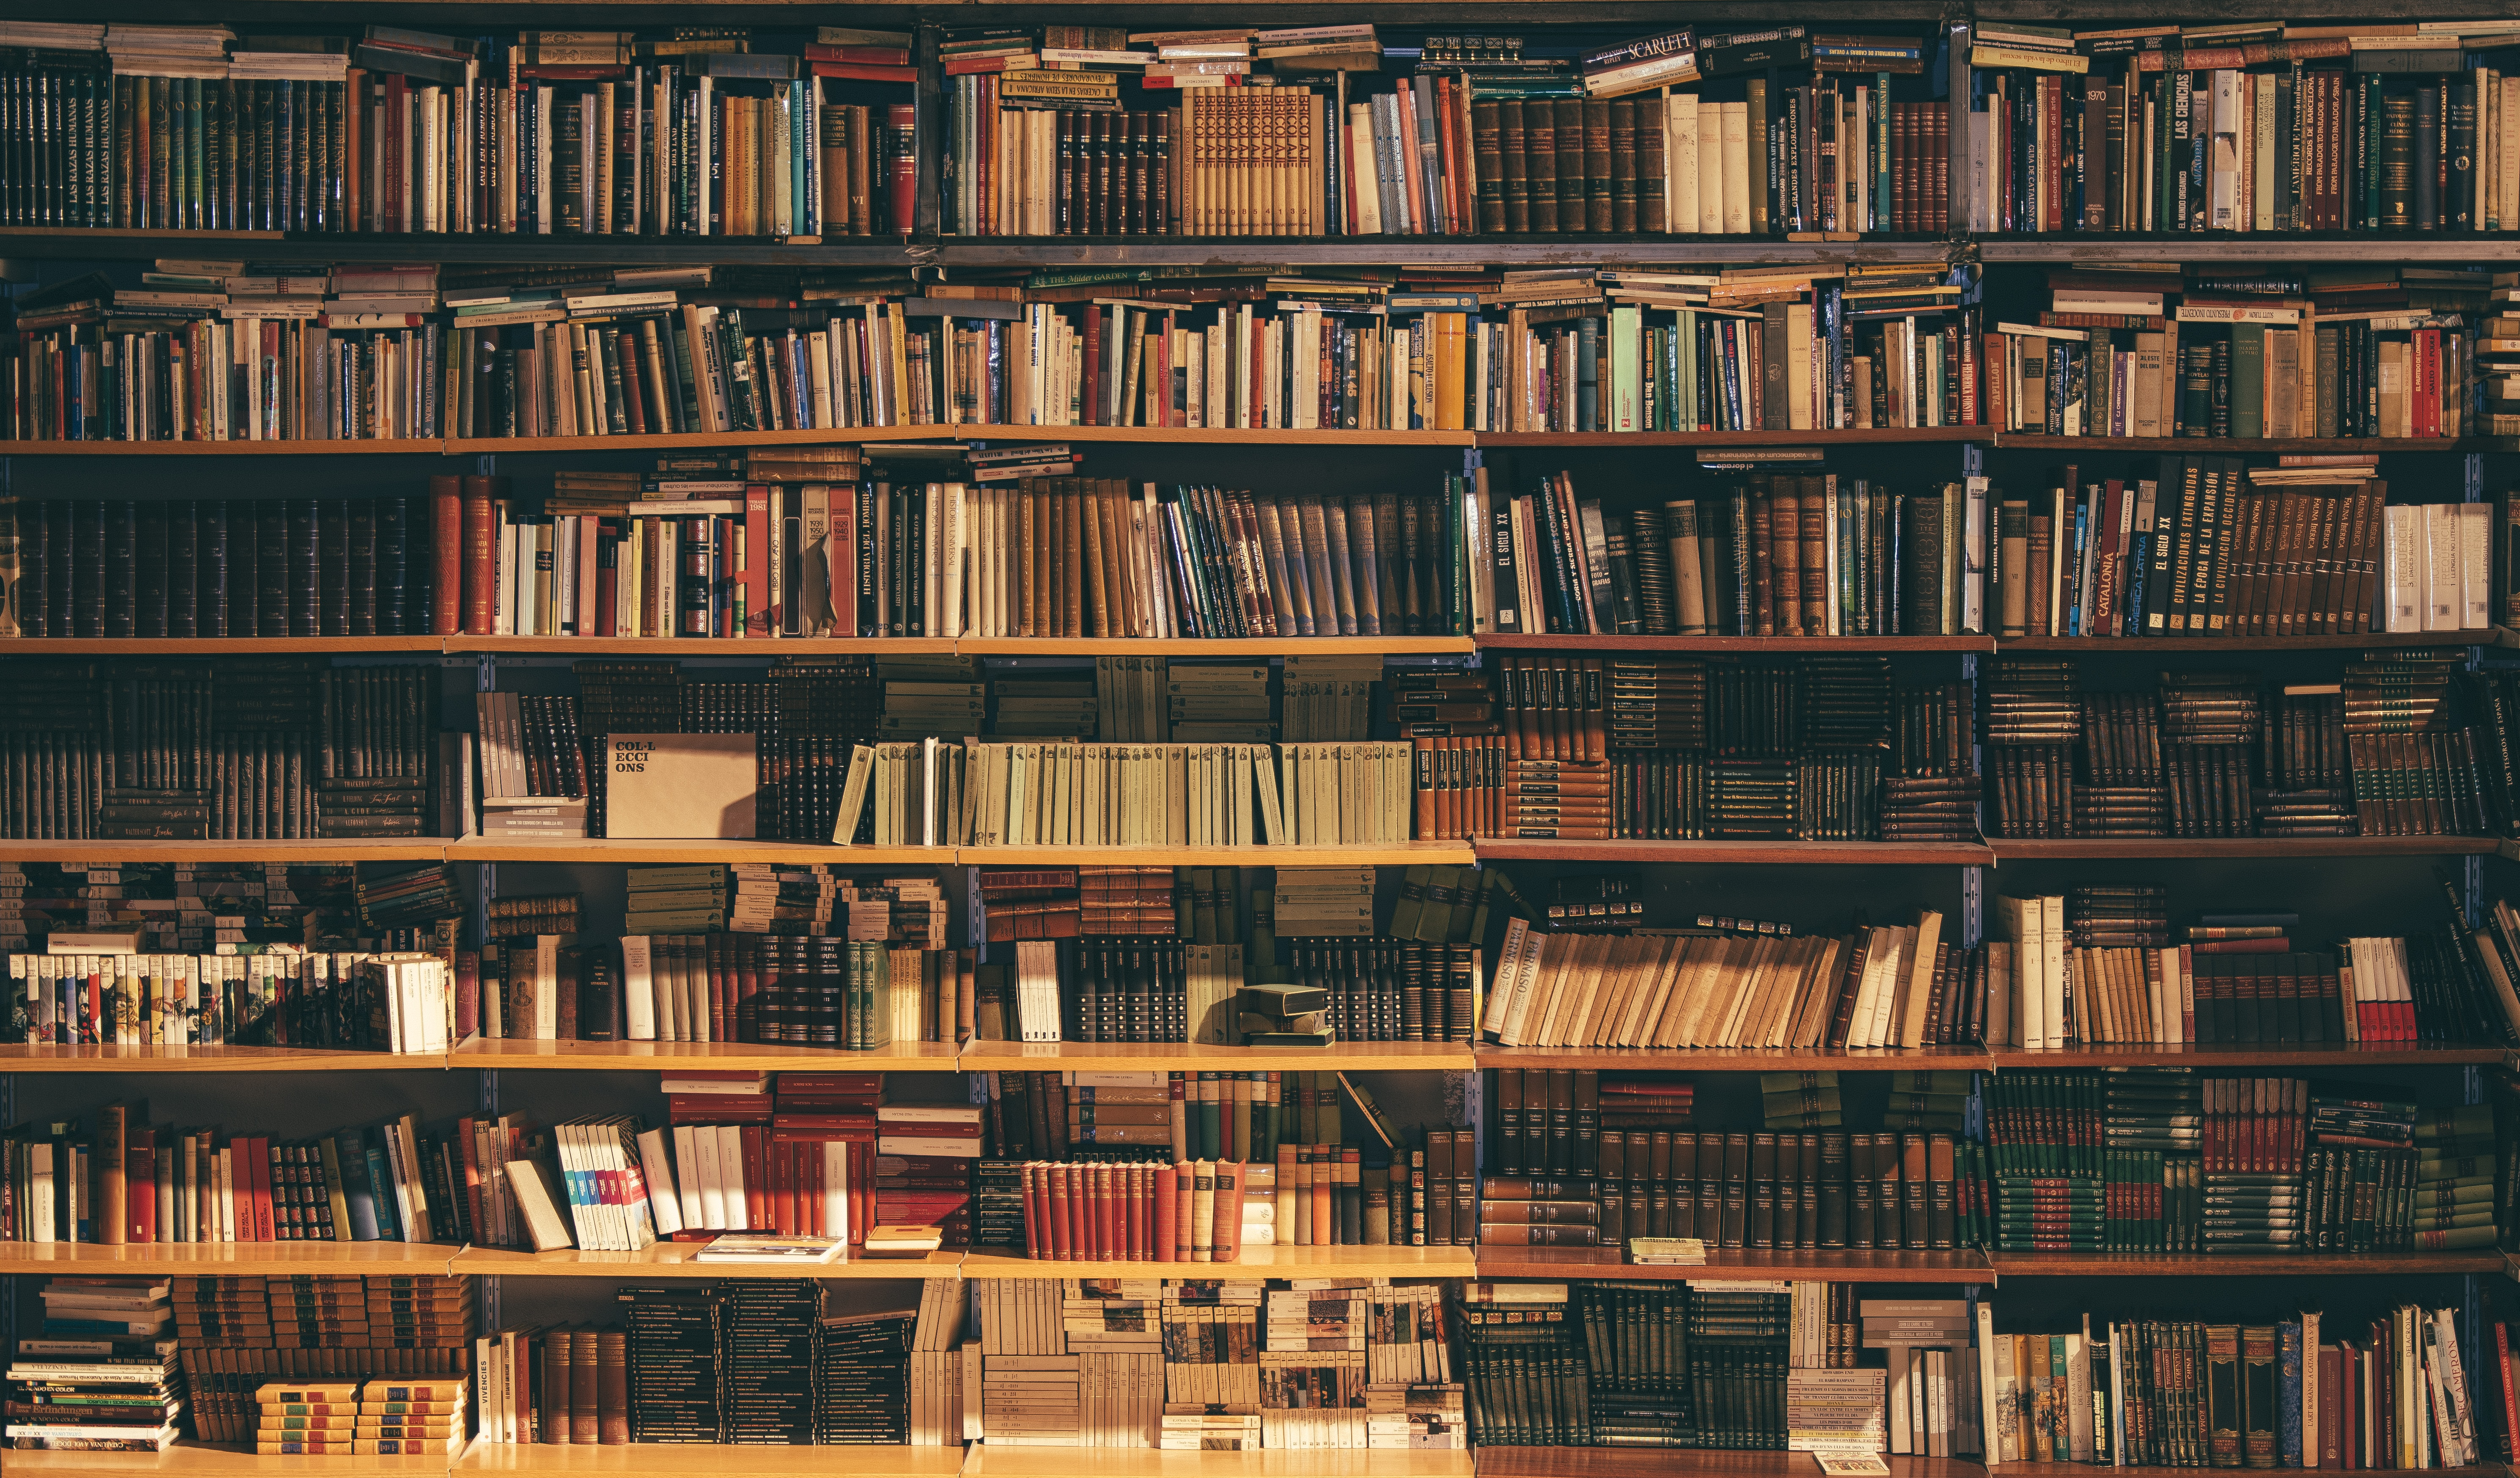 Best Library Pictures HD Download Free Images on